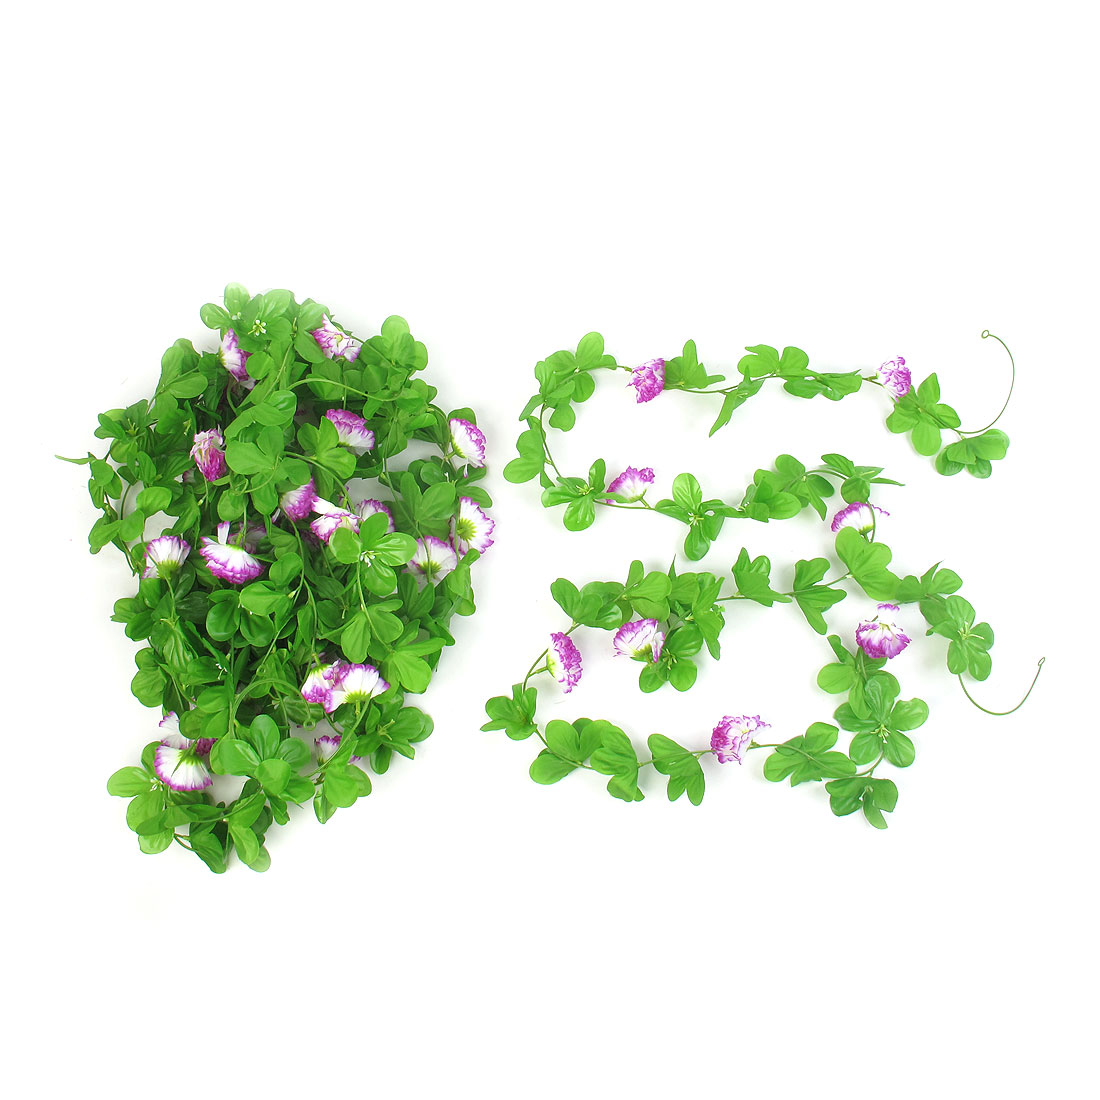 5 Pcs 2.4M Long Green White Purple Plastic Fabric Artificial Flower Hanging Vines for Home Party Decor